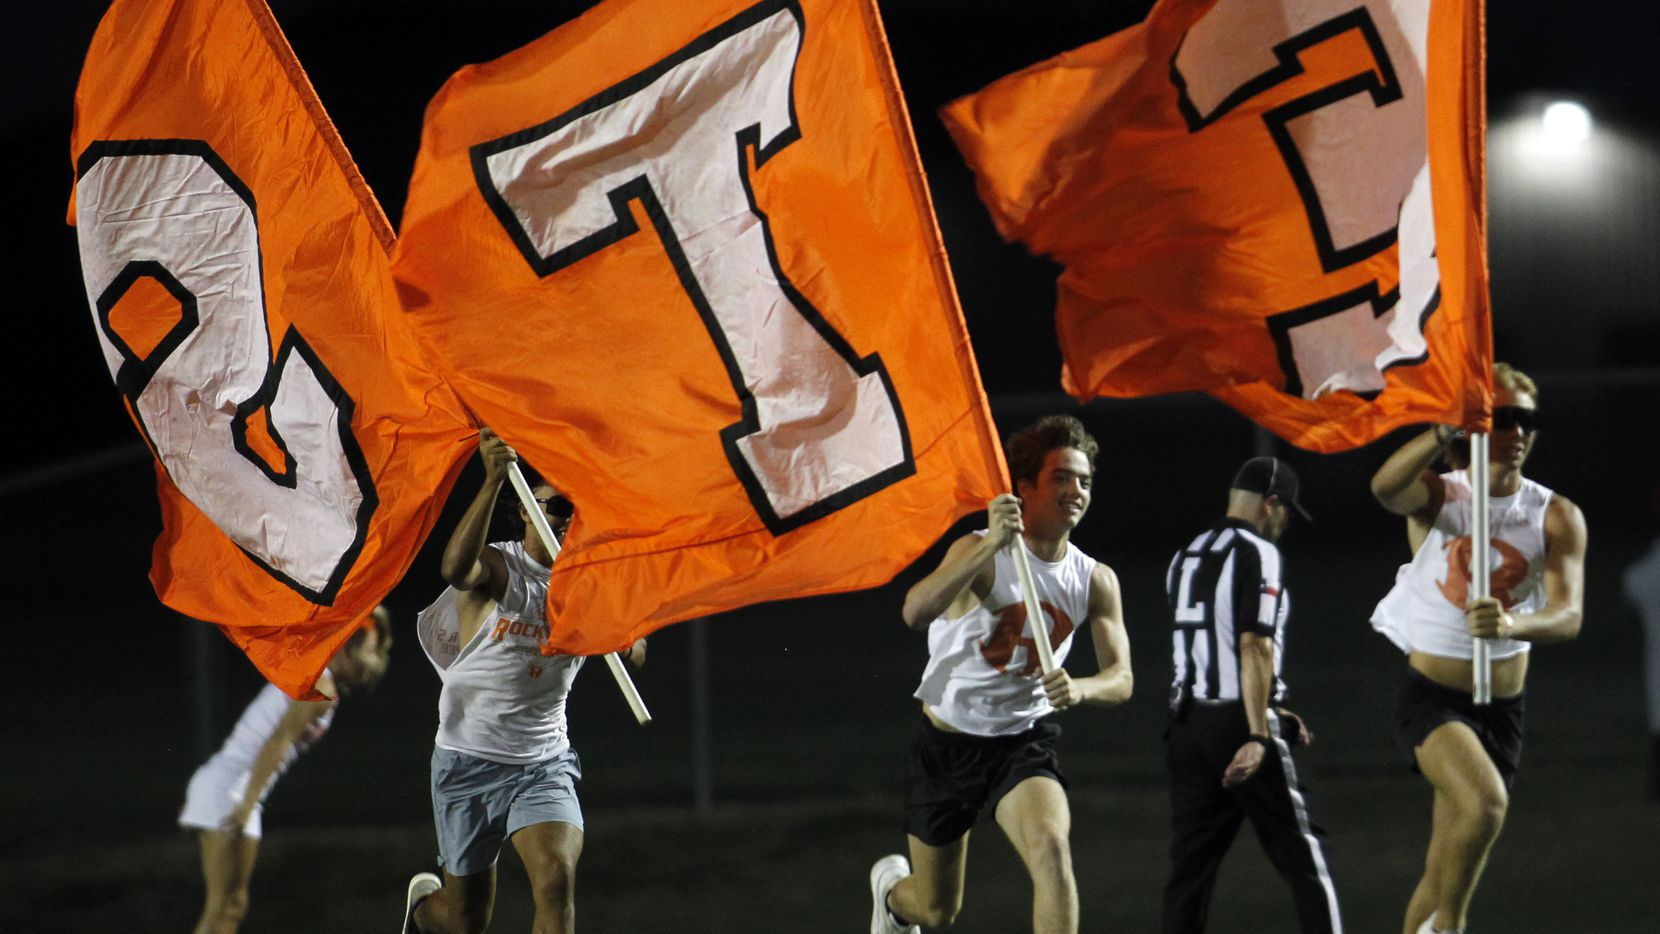 Rockwall flag wavers sprint across the field following a first half yellow-jackets touchdown in their game against Cedar Hill. The two teams played their season opening football game at Longhorn Stadium in Cedar Hill on August 27, 2021. (Steve Hamm/ Special Contributor)